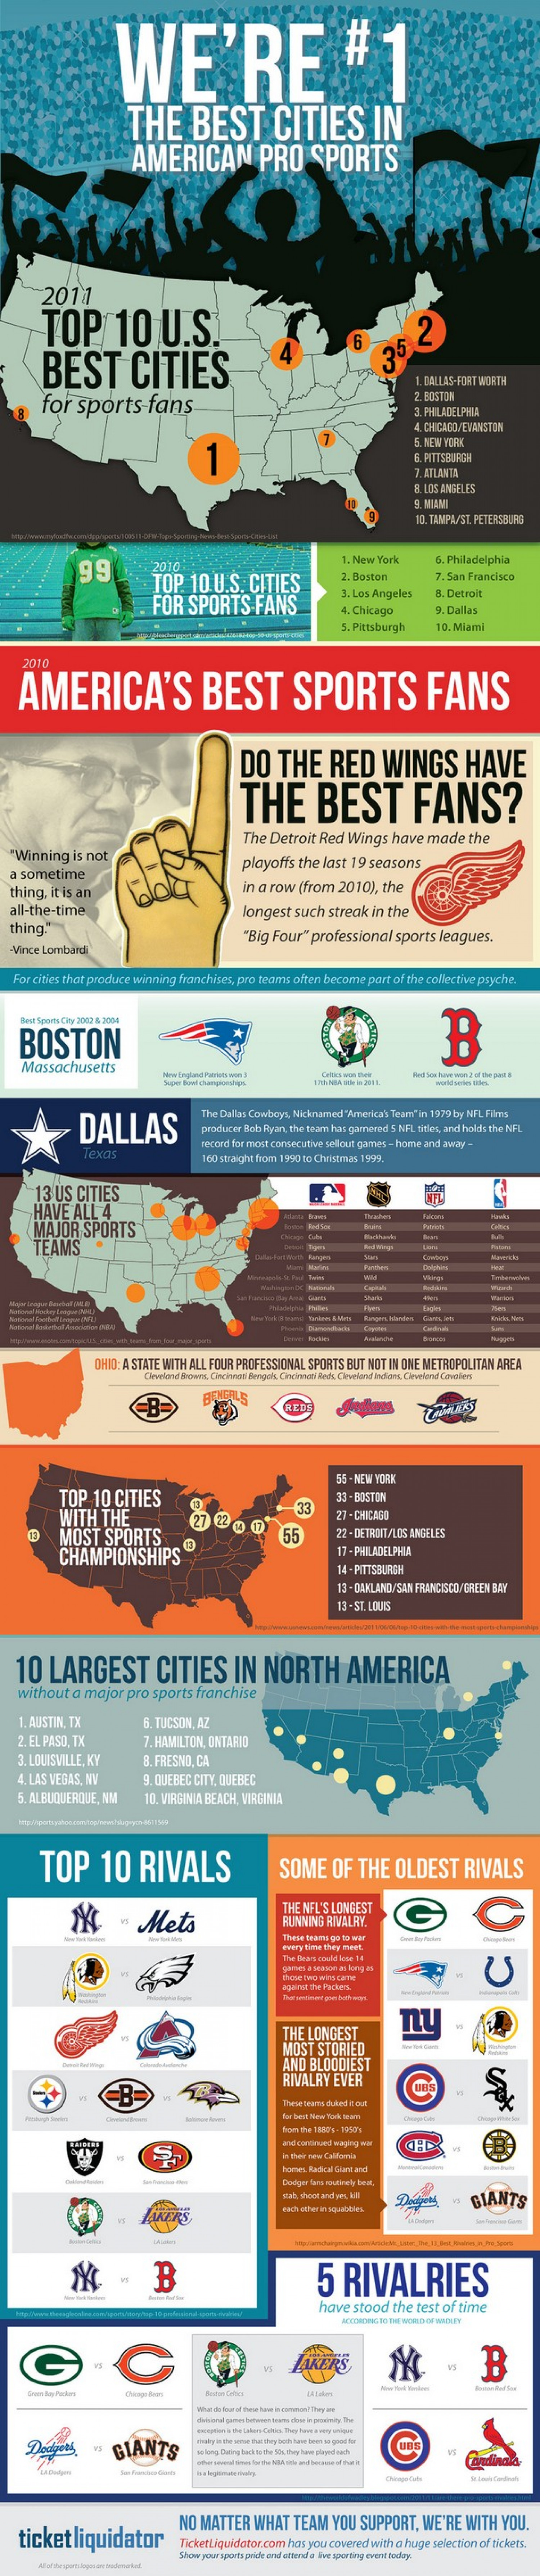 We're #1: The Best Cities in American Pro Sports  Infographic